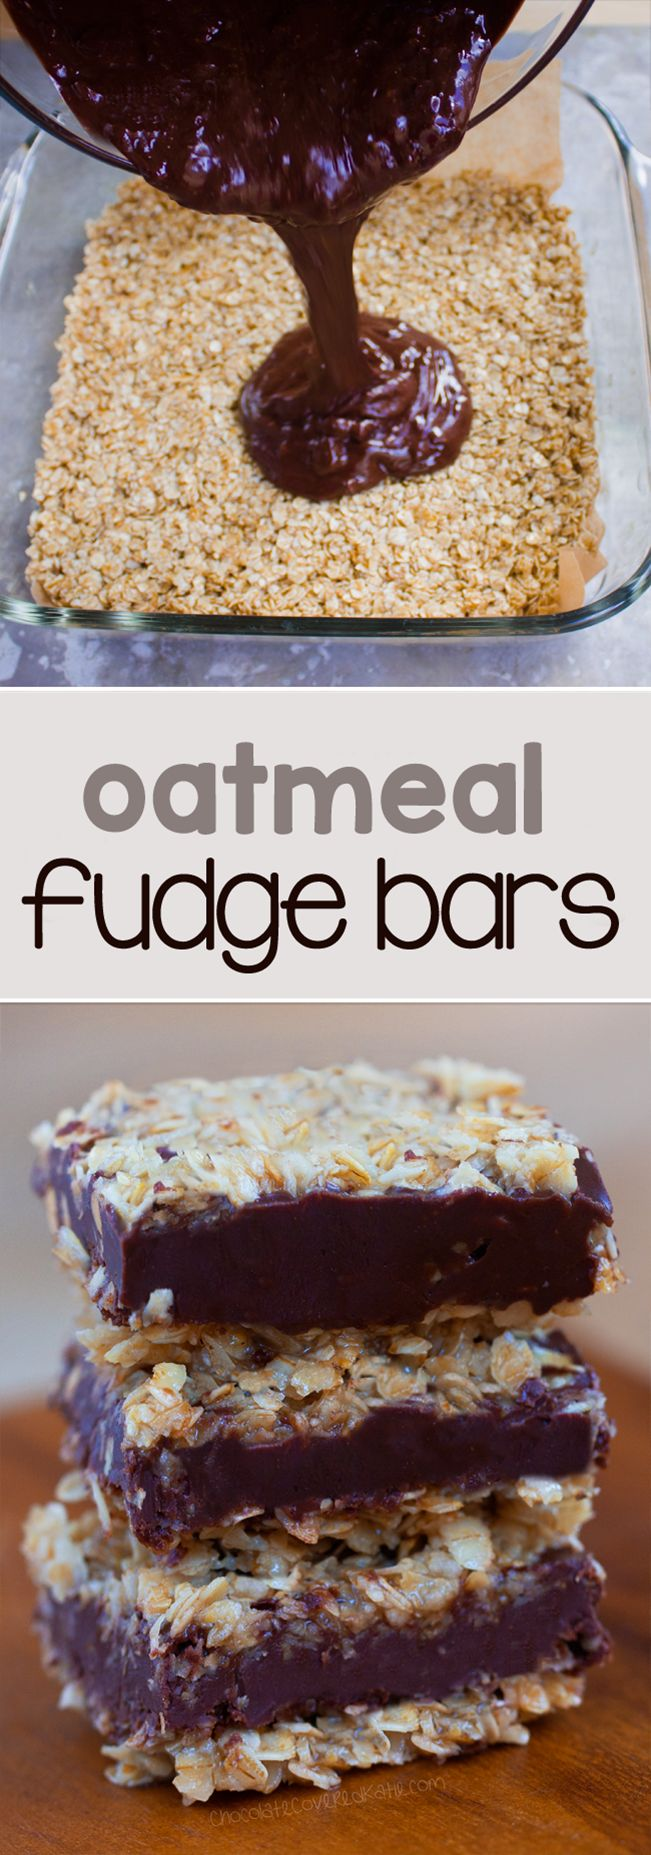 Oatmeal Fudge Bars - These gooey fudge bars are ADDICTIVE!